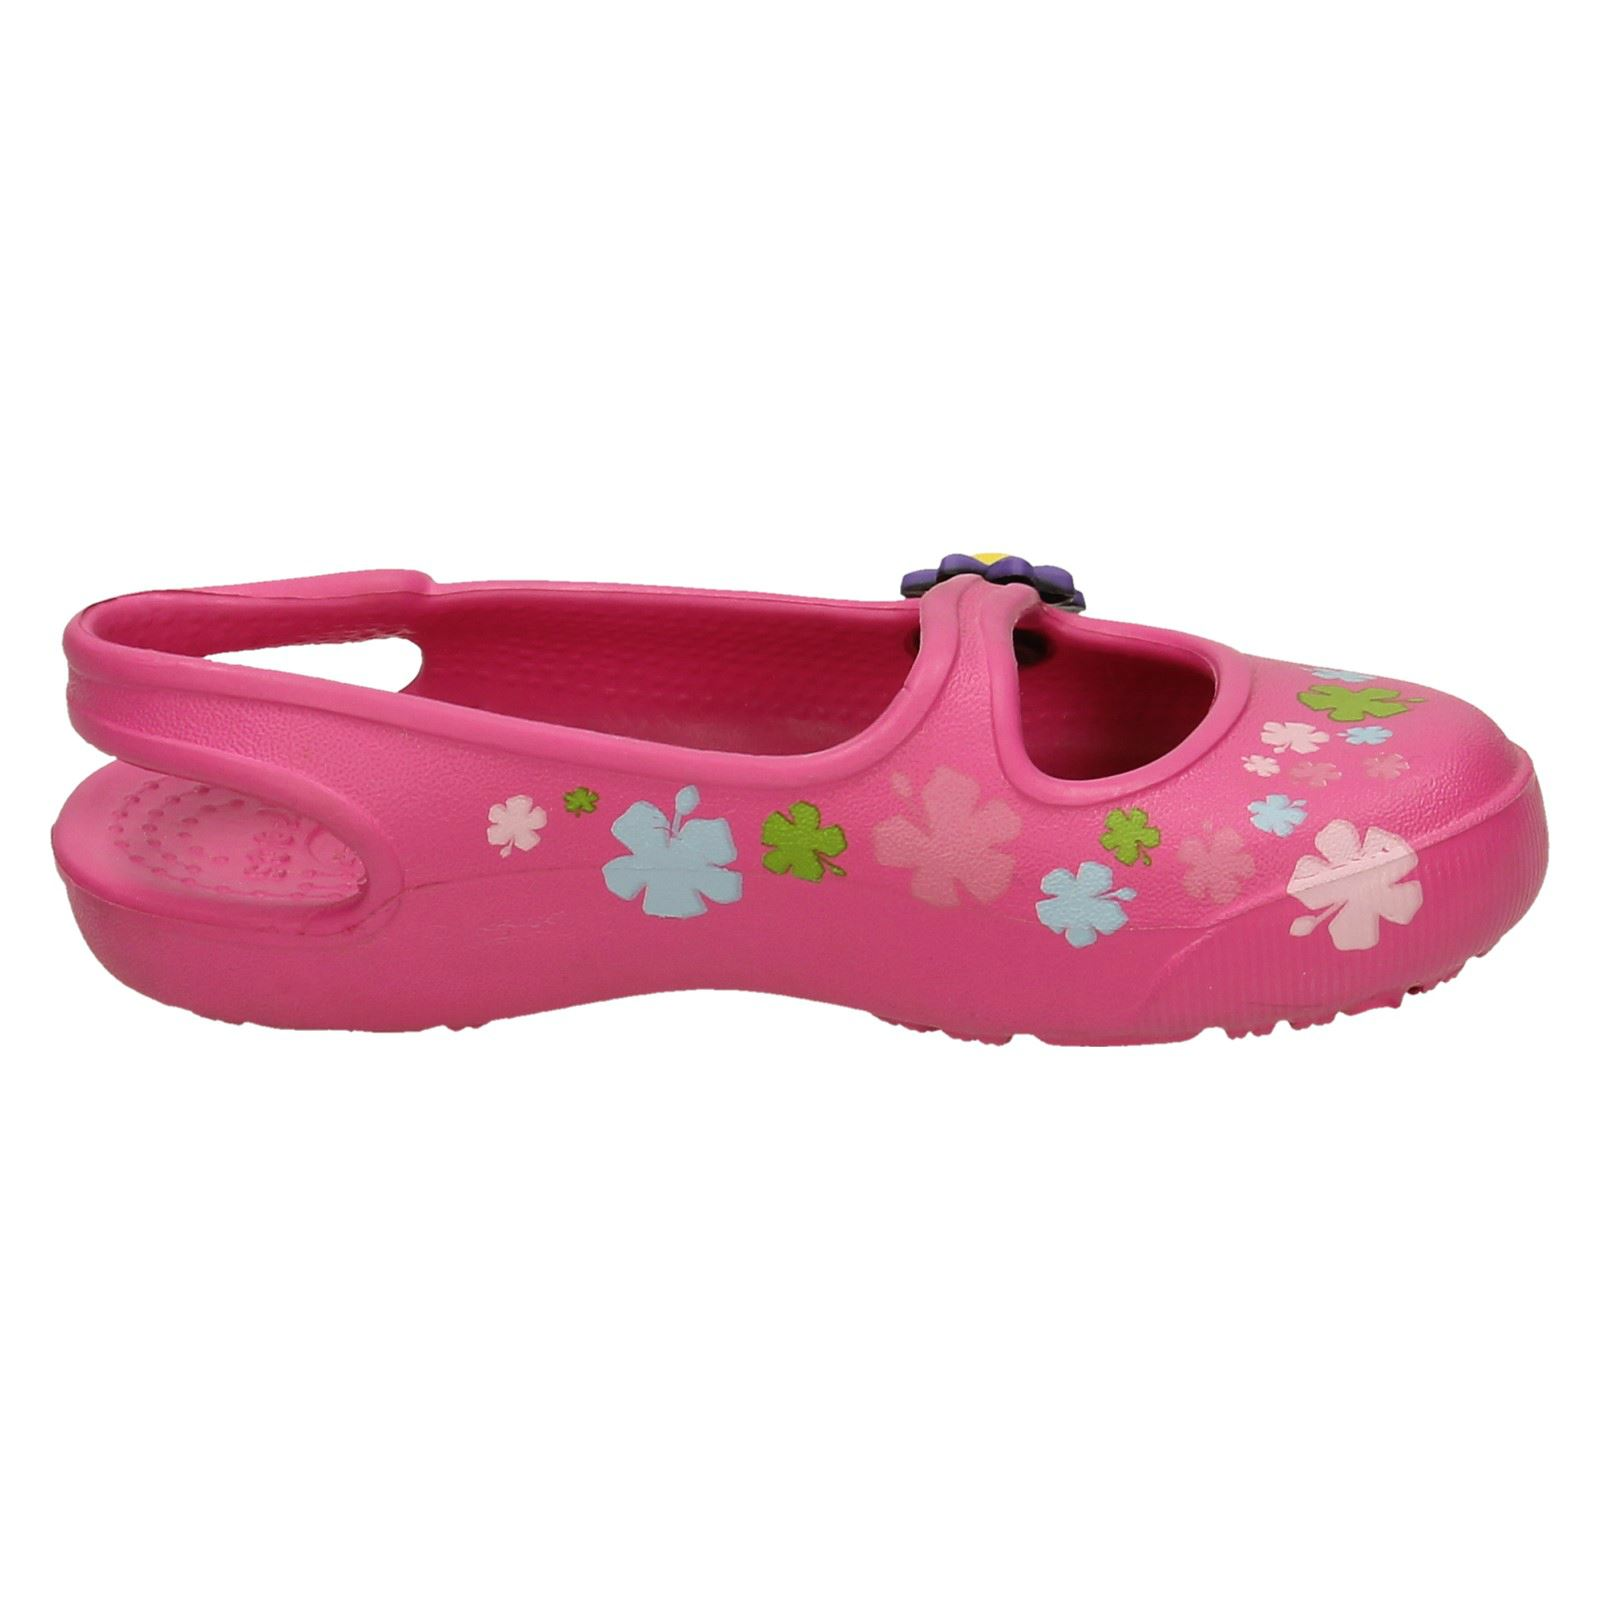 eb537b43ef96 Crocs-Girls-Slip-On-Sandals-Gabby-Flowers thumbnail 9